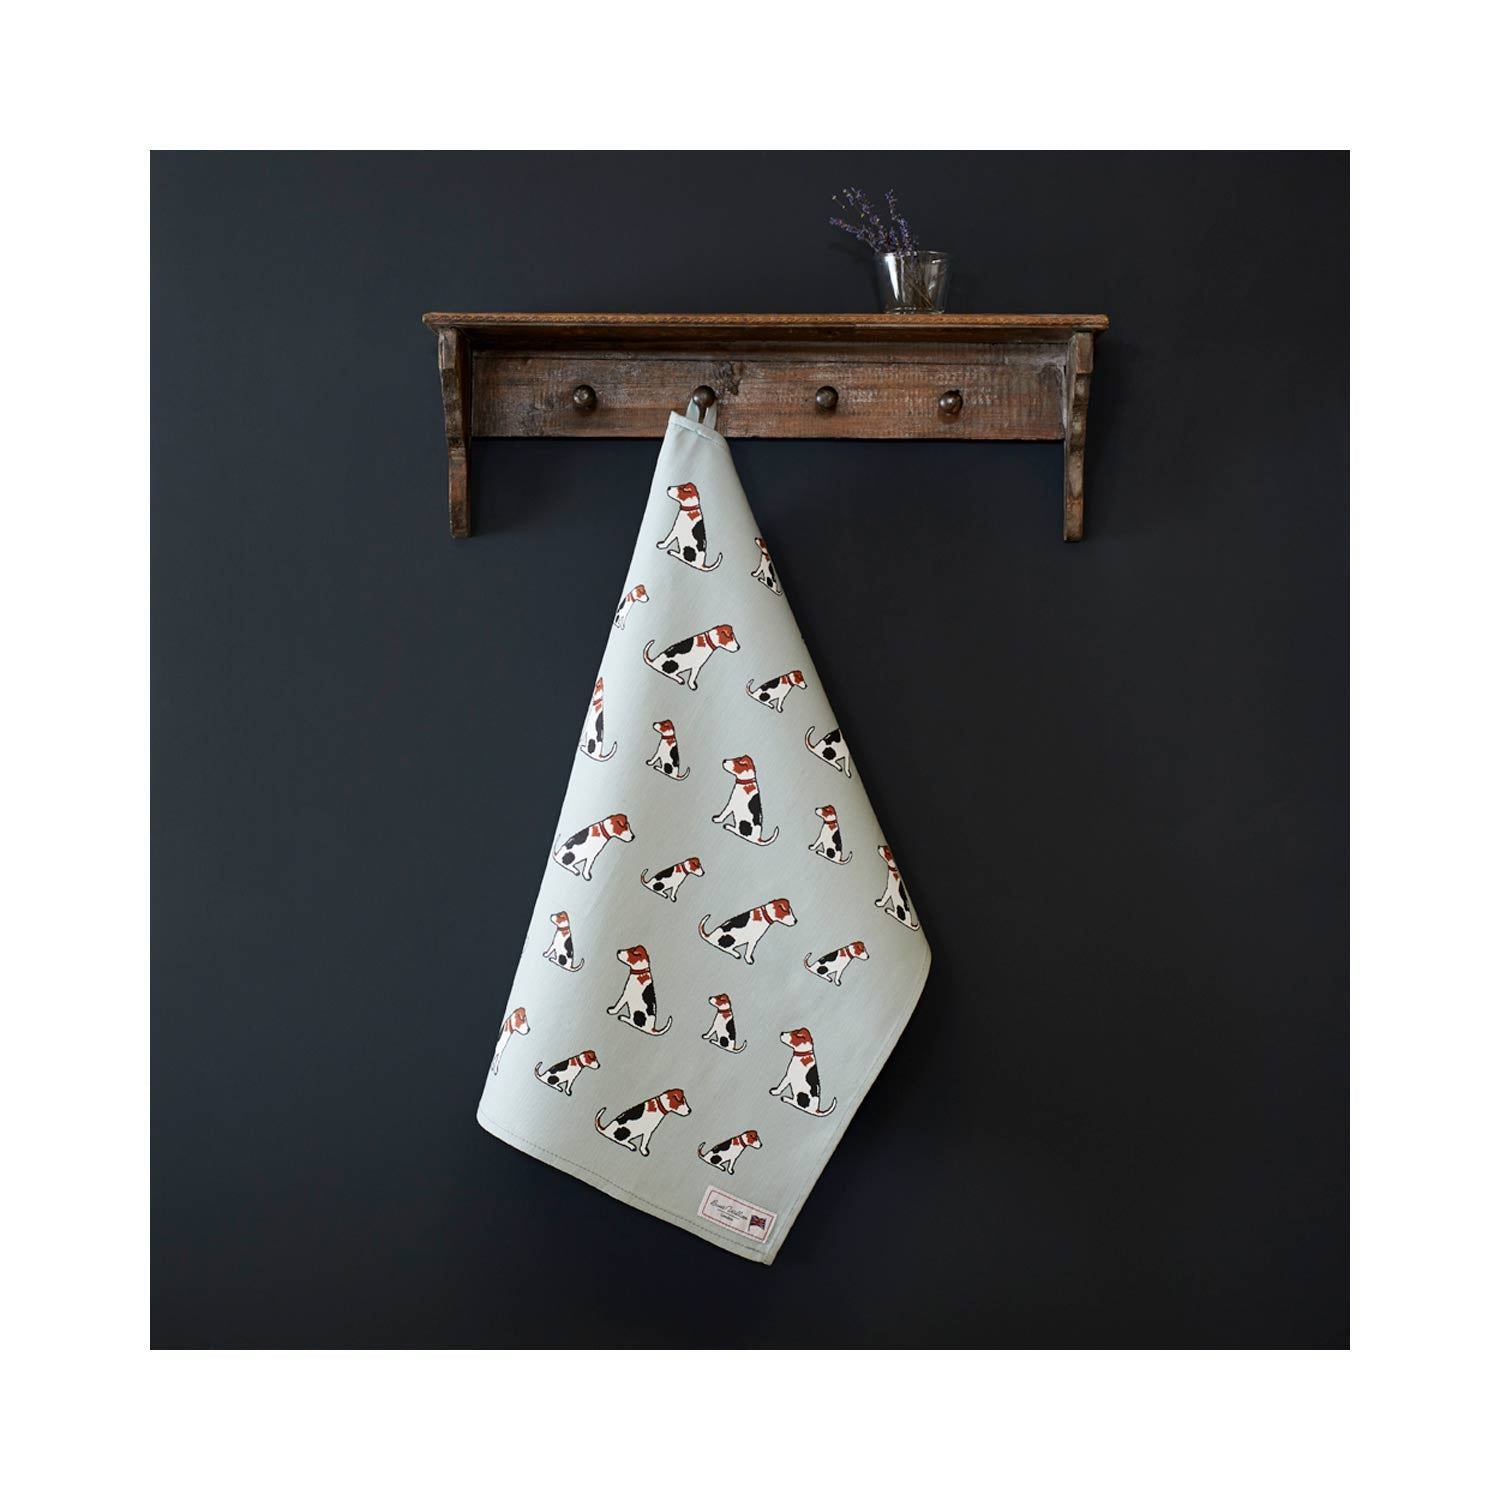 Dog Lover Gifts - Dog Krazy Gifts – alfie the adorable jack russell Organic Tea Towel - part of the Sweet William range available from www.DogKrazyGifts.co.uk